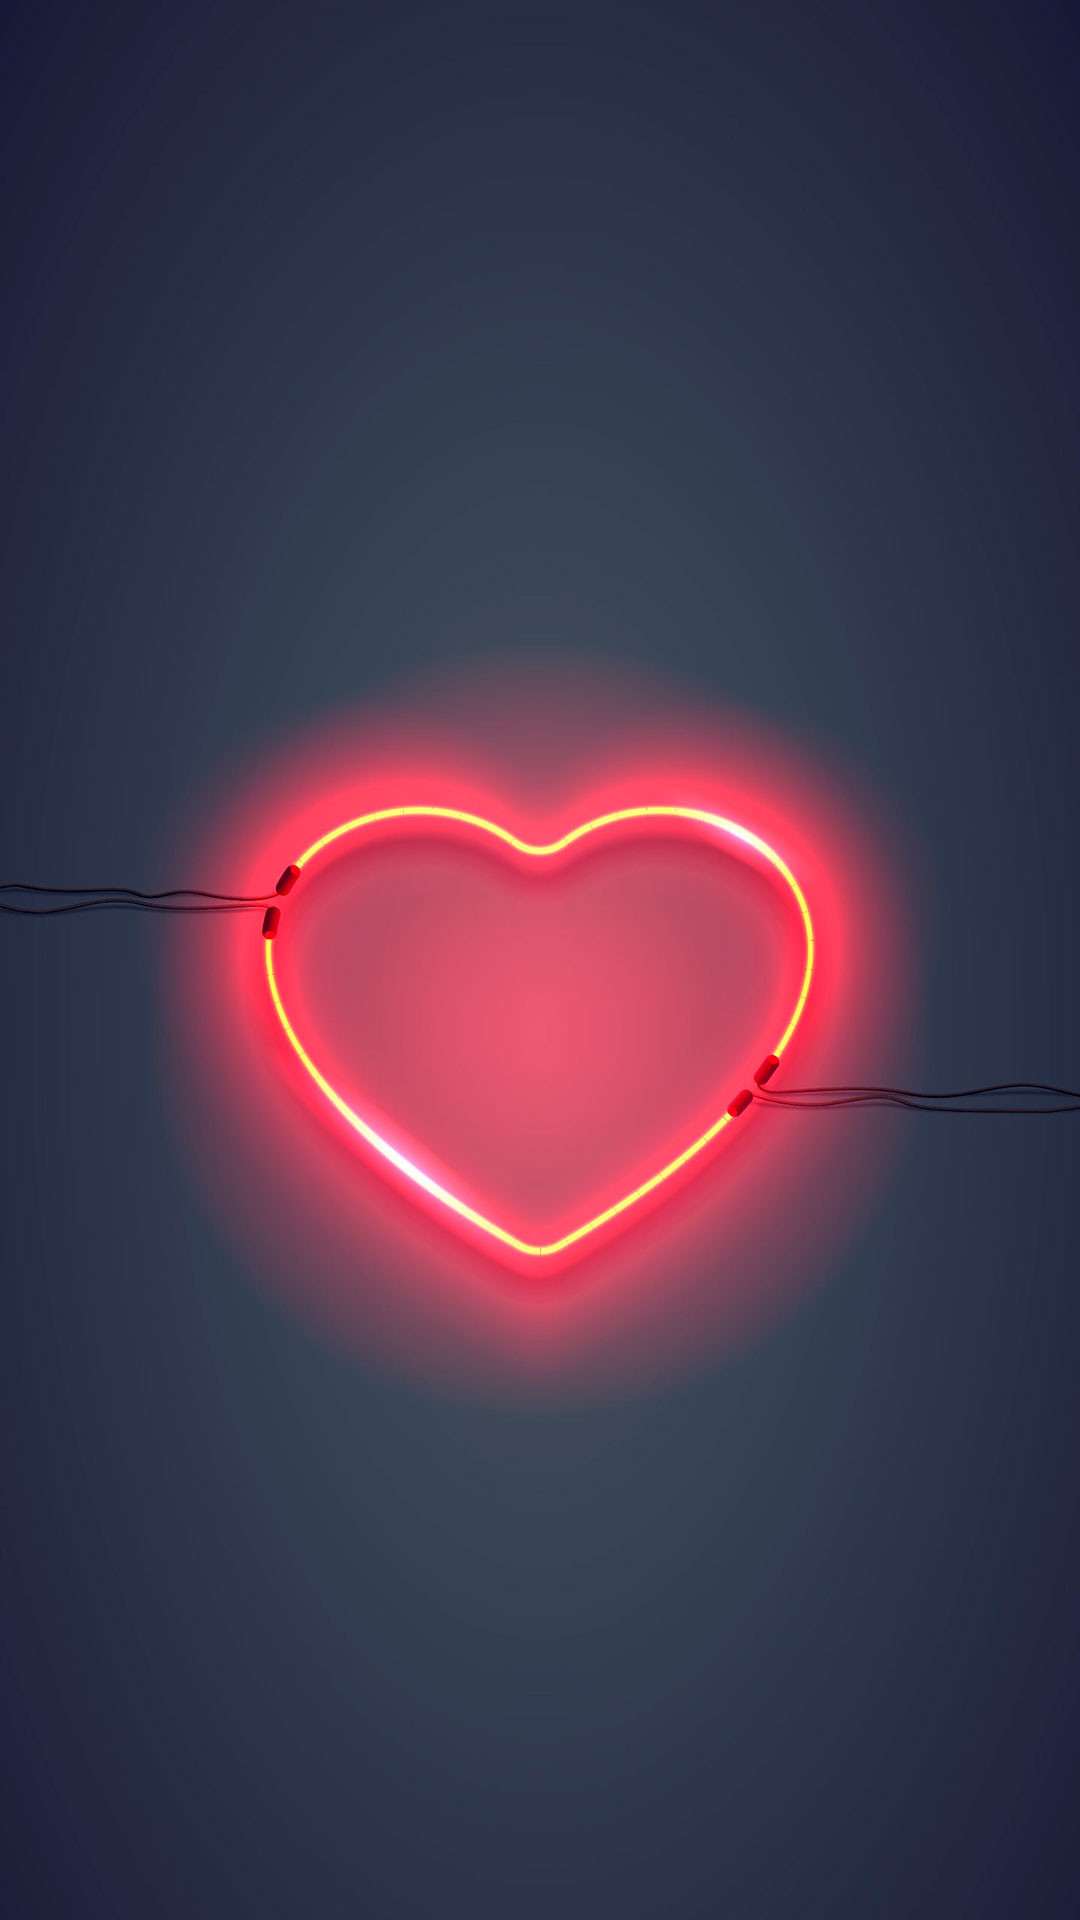 1080x1920  iPhone wallpaper neon sign heart Neon Sign. 9 · Download · Res:   ...